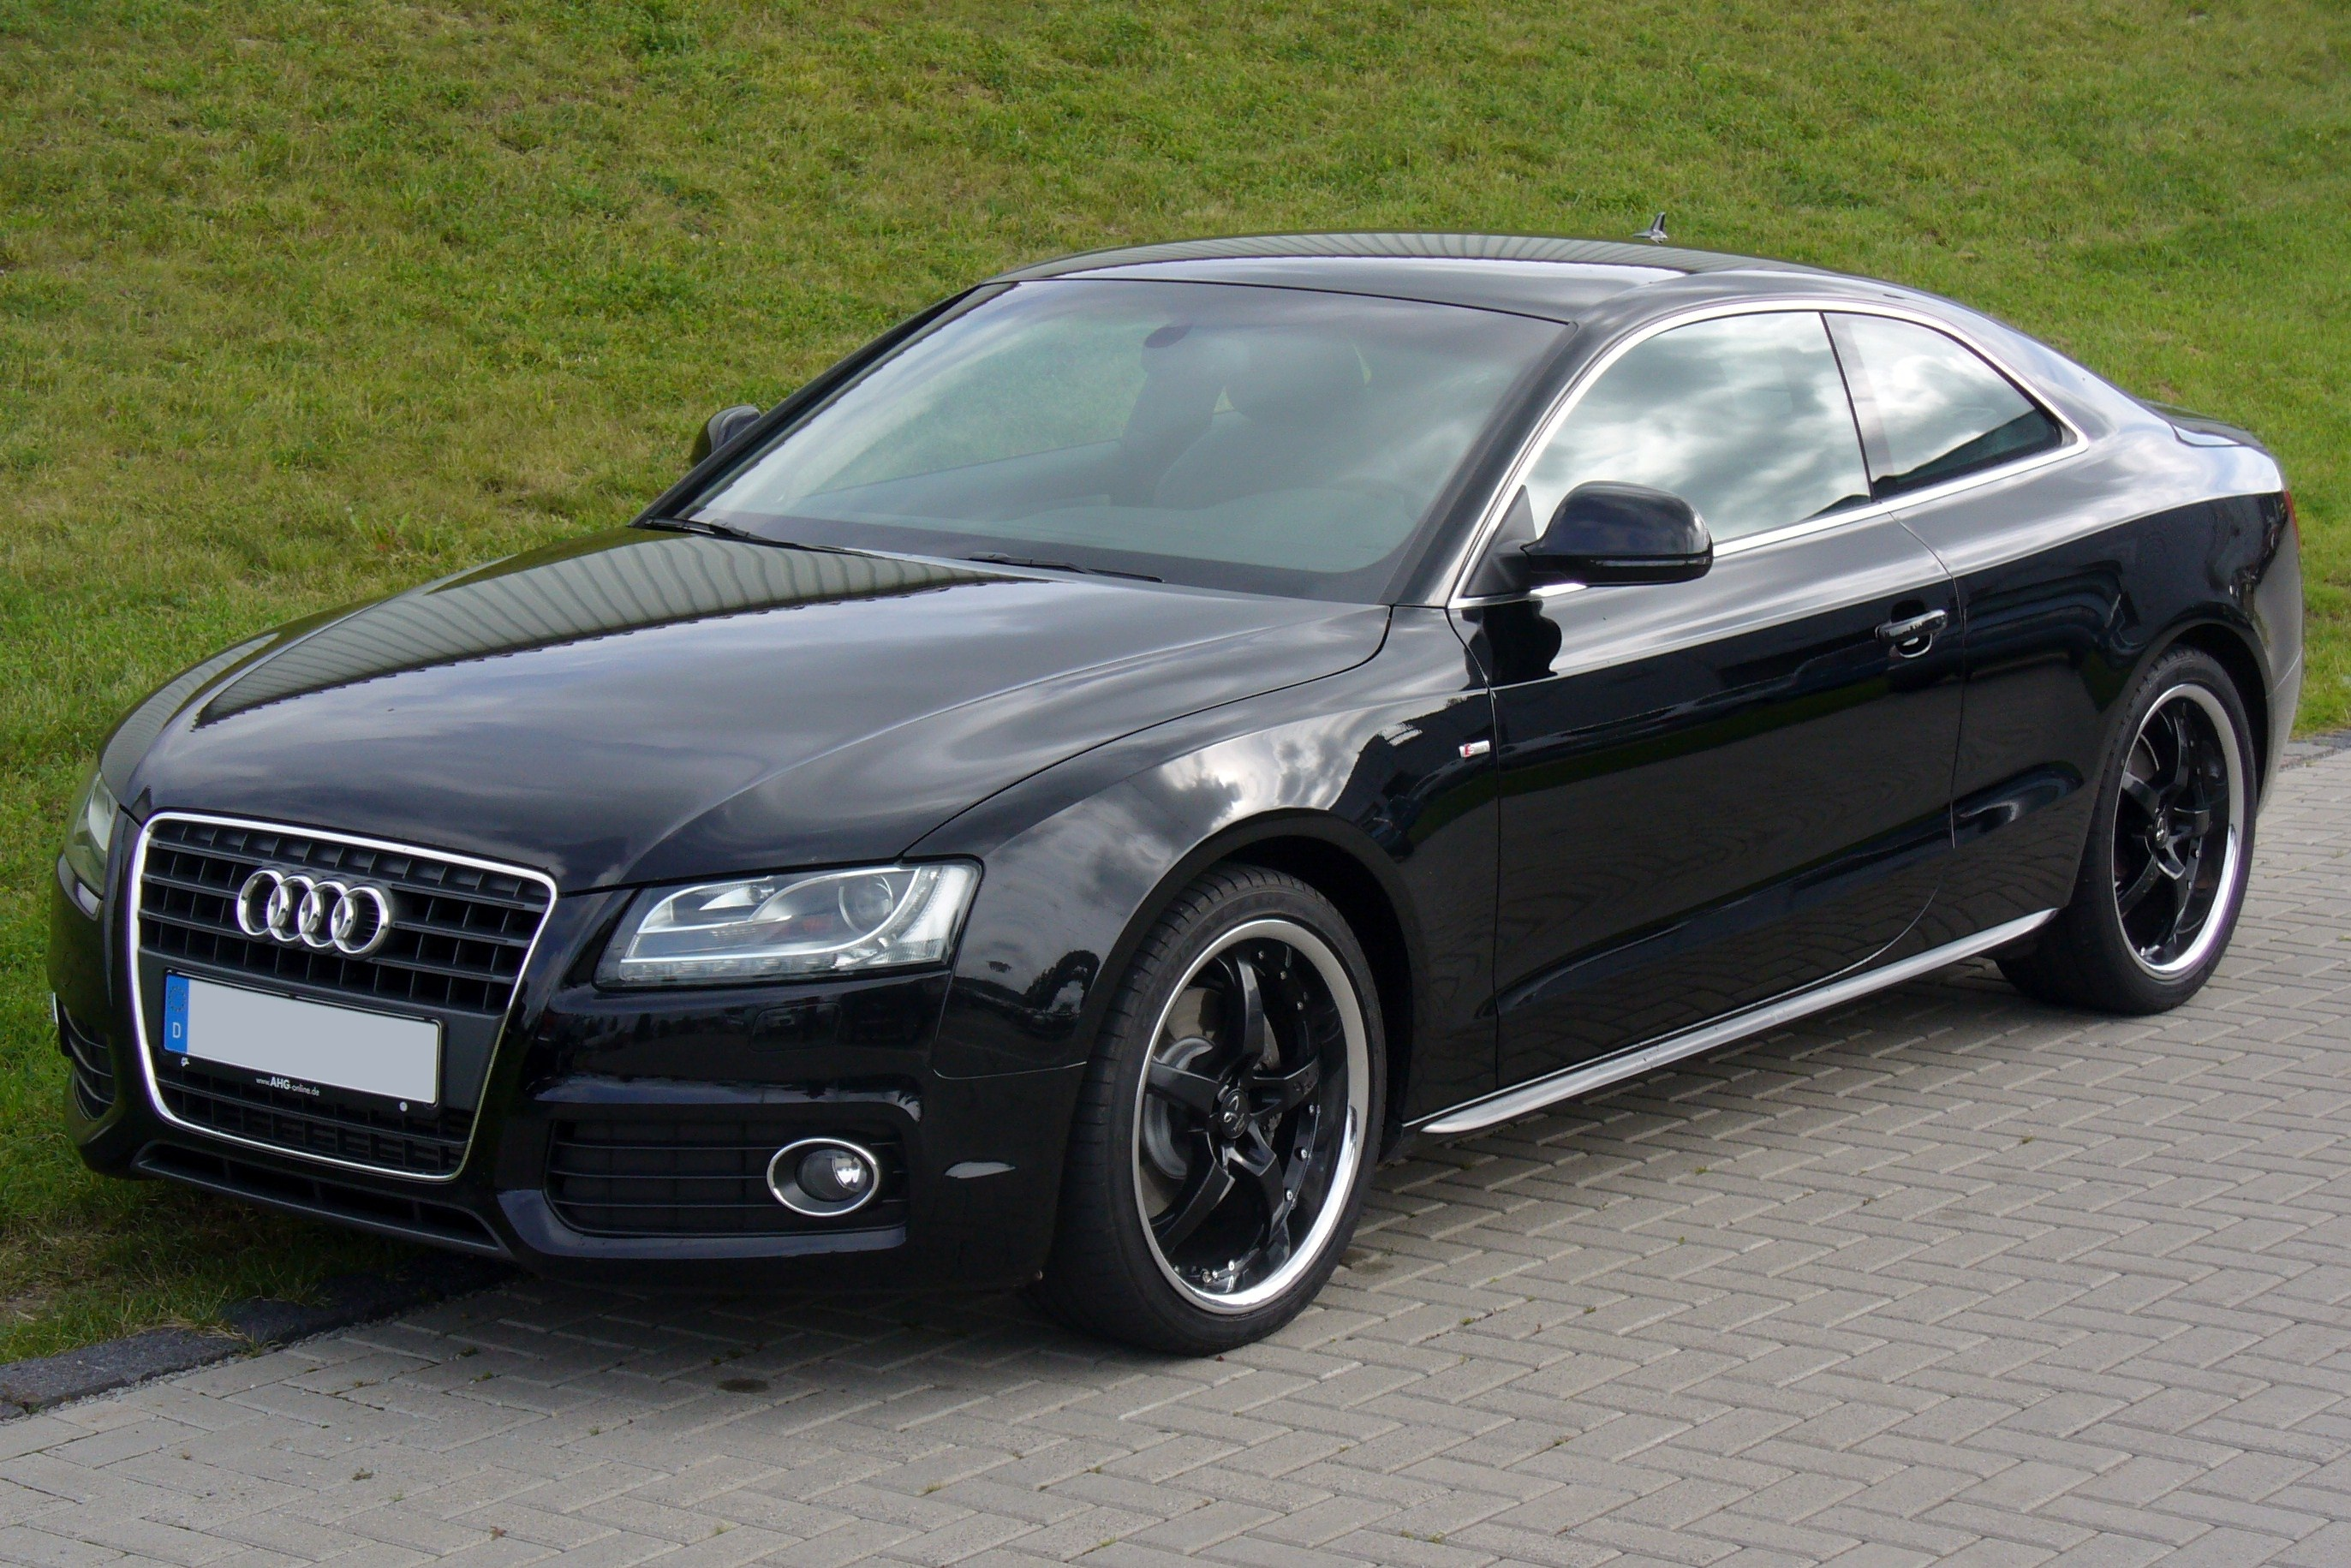 audi a5 coupe blacked out images galleries with a bite. Black Bedroom Furniture Sets. Home Design Ideas